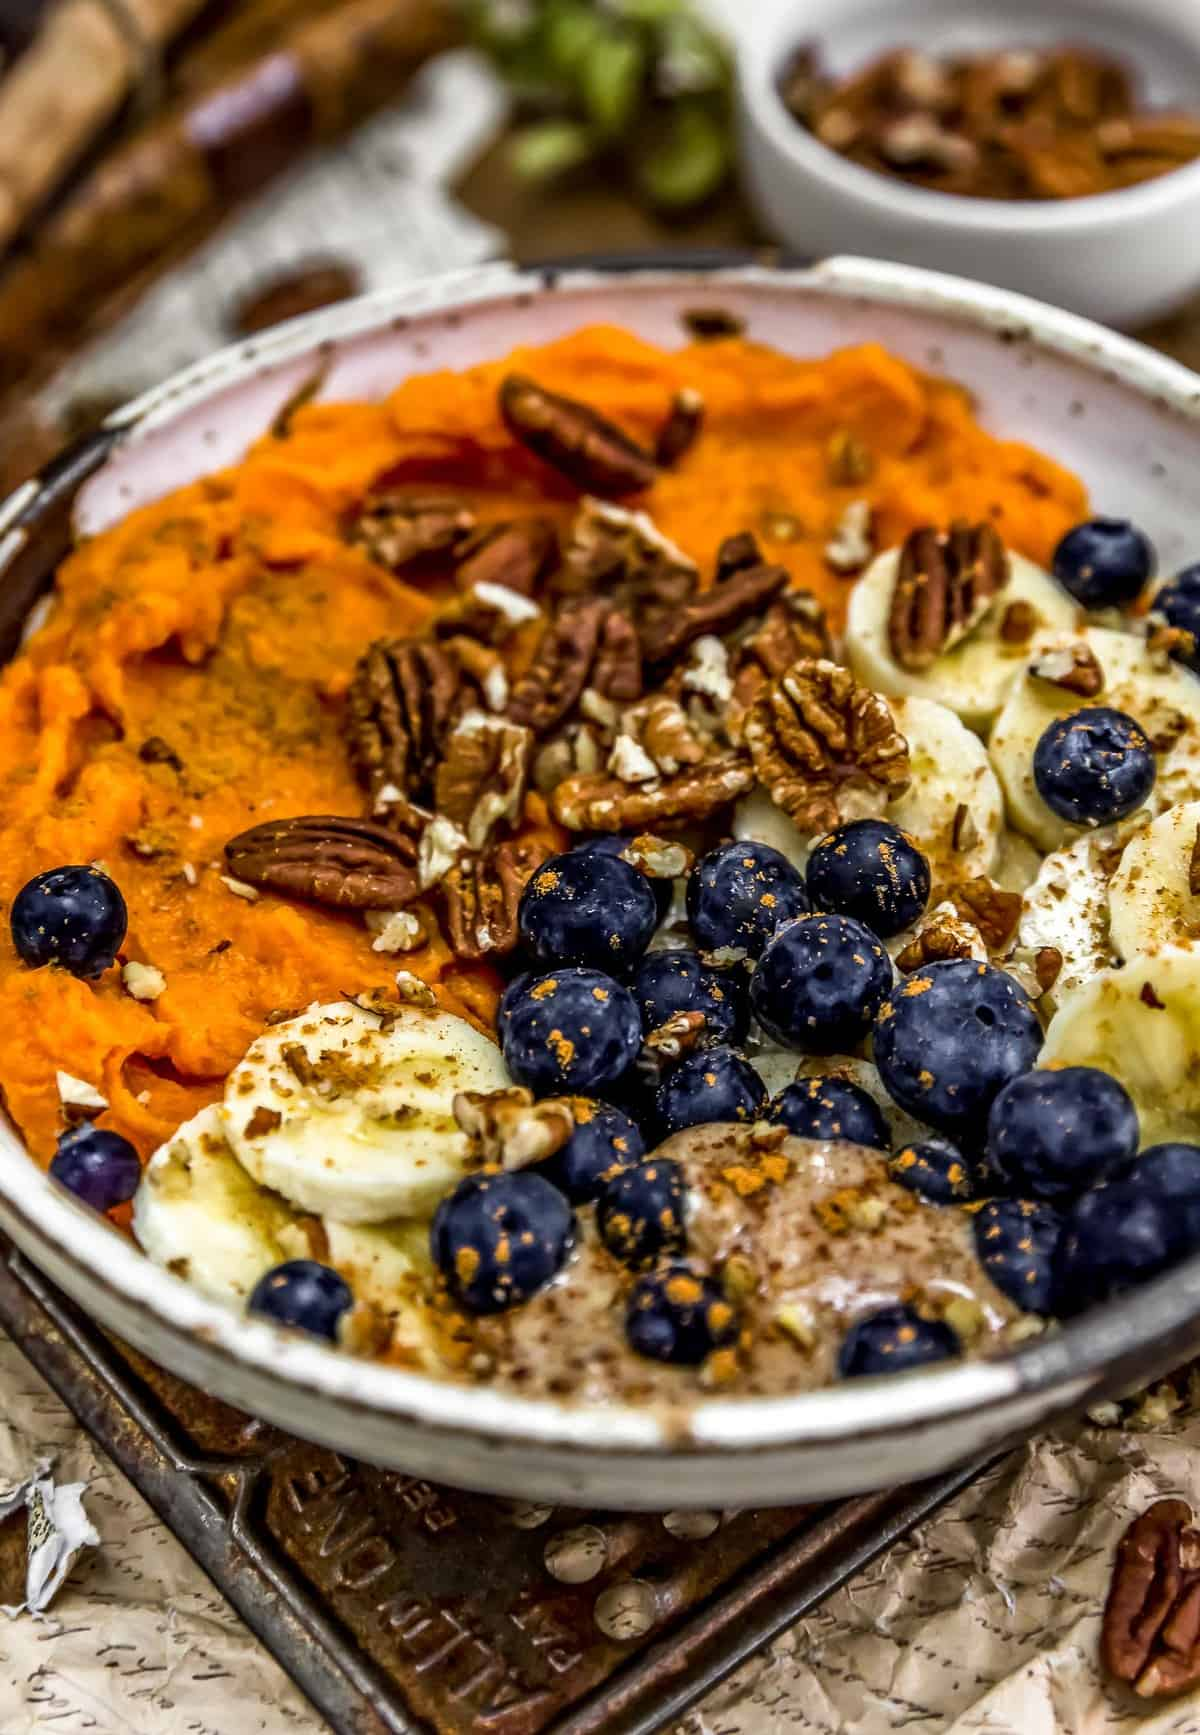 Close up of Cinnamon Blueberry Pecan Bowl